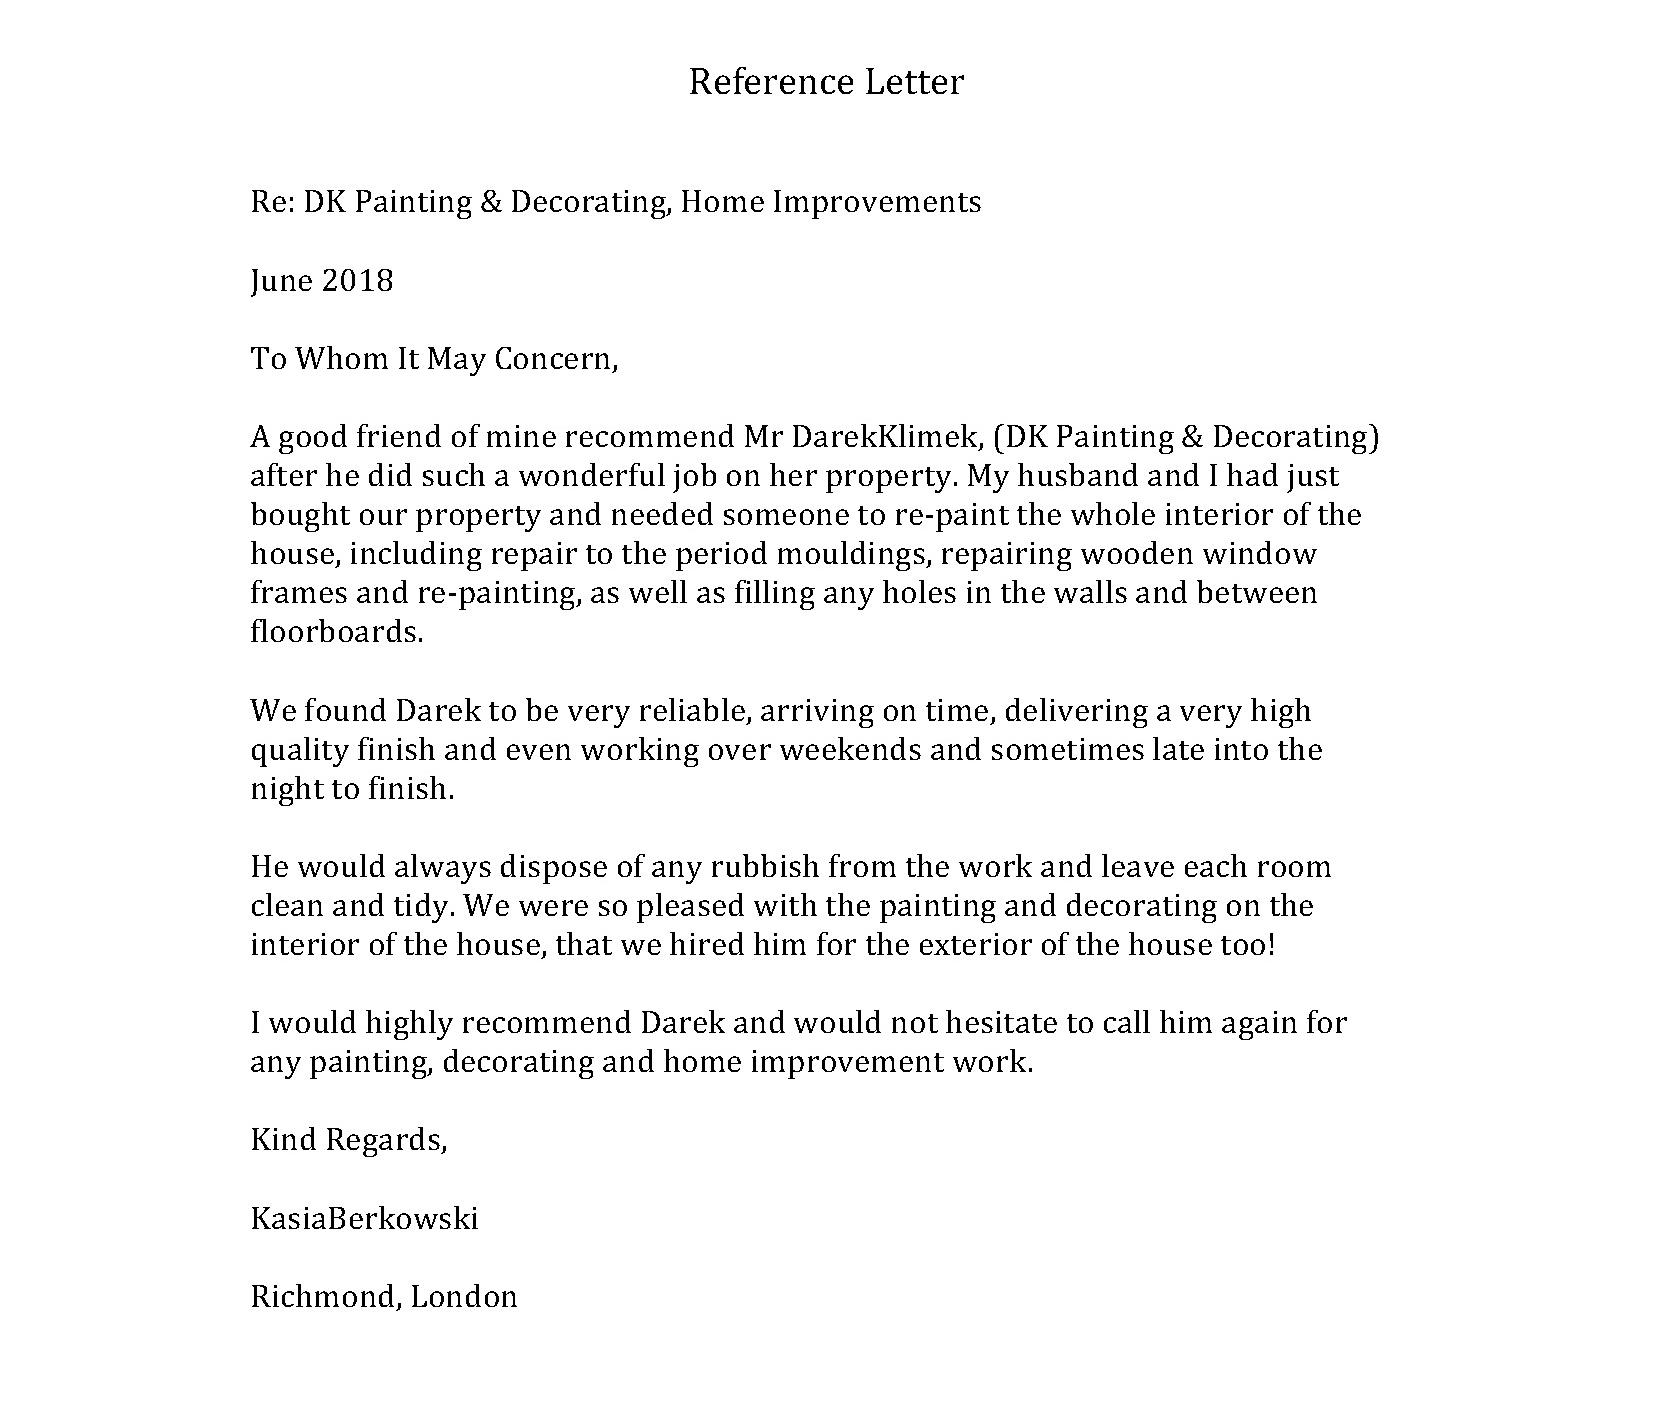 Reference letter from kasiaberkowski expocarfo Gallery